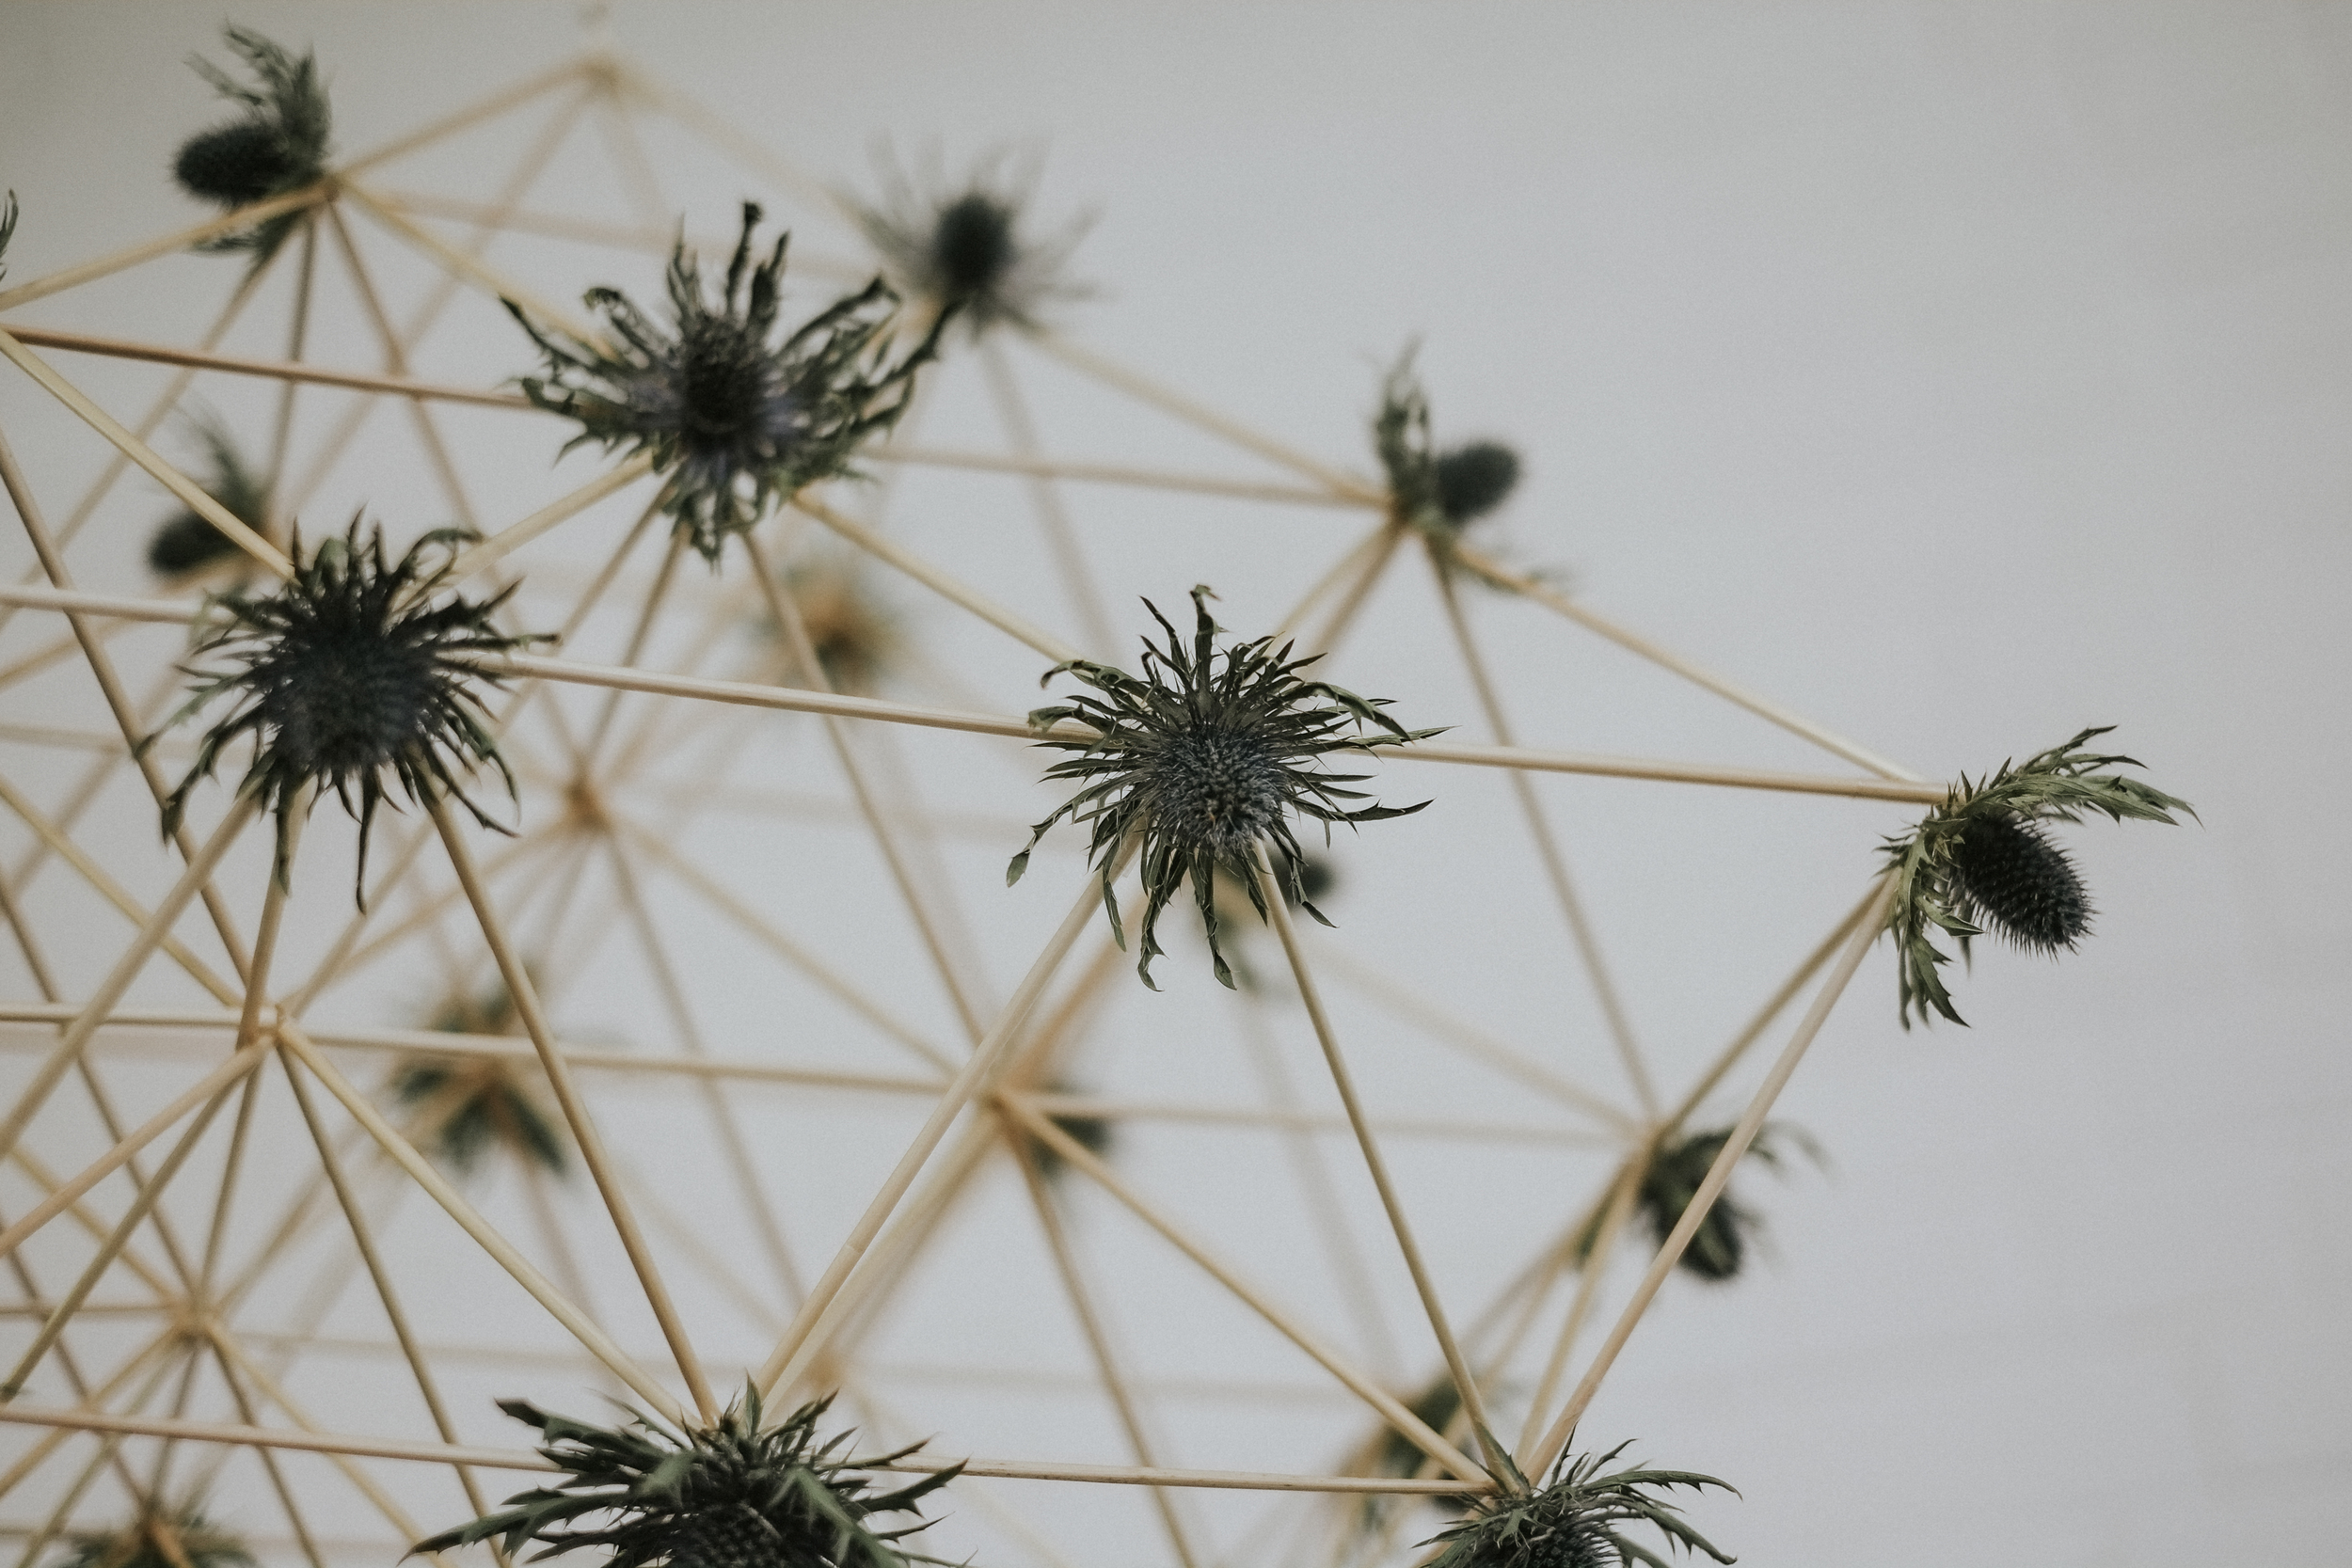 Striking geometric pajaki (traditional Polish chandeliers). This contemporary installation was handmade with rye straws and thistles by the charming Karolina of  bobbin & bow .